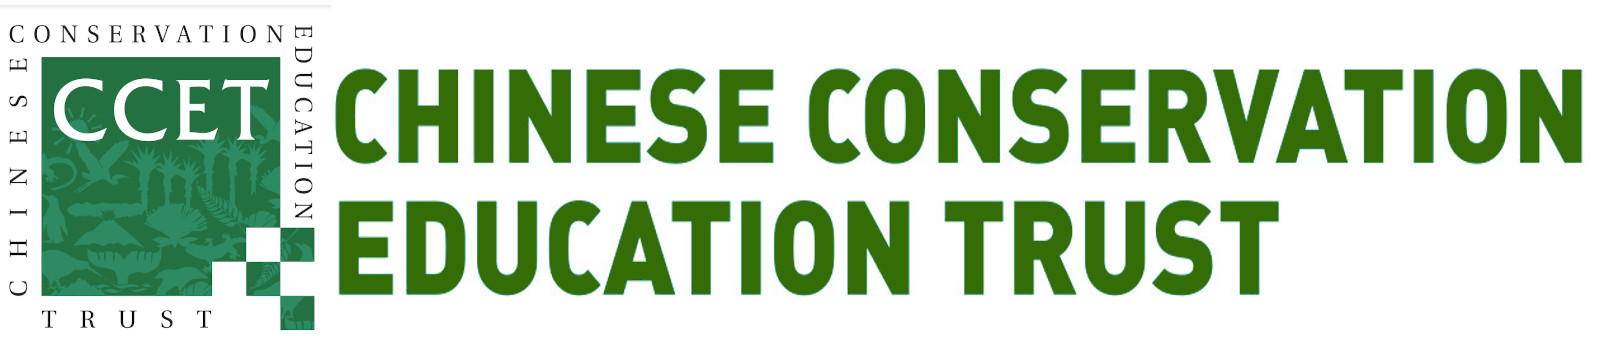 Chinese Conservation Education Trust